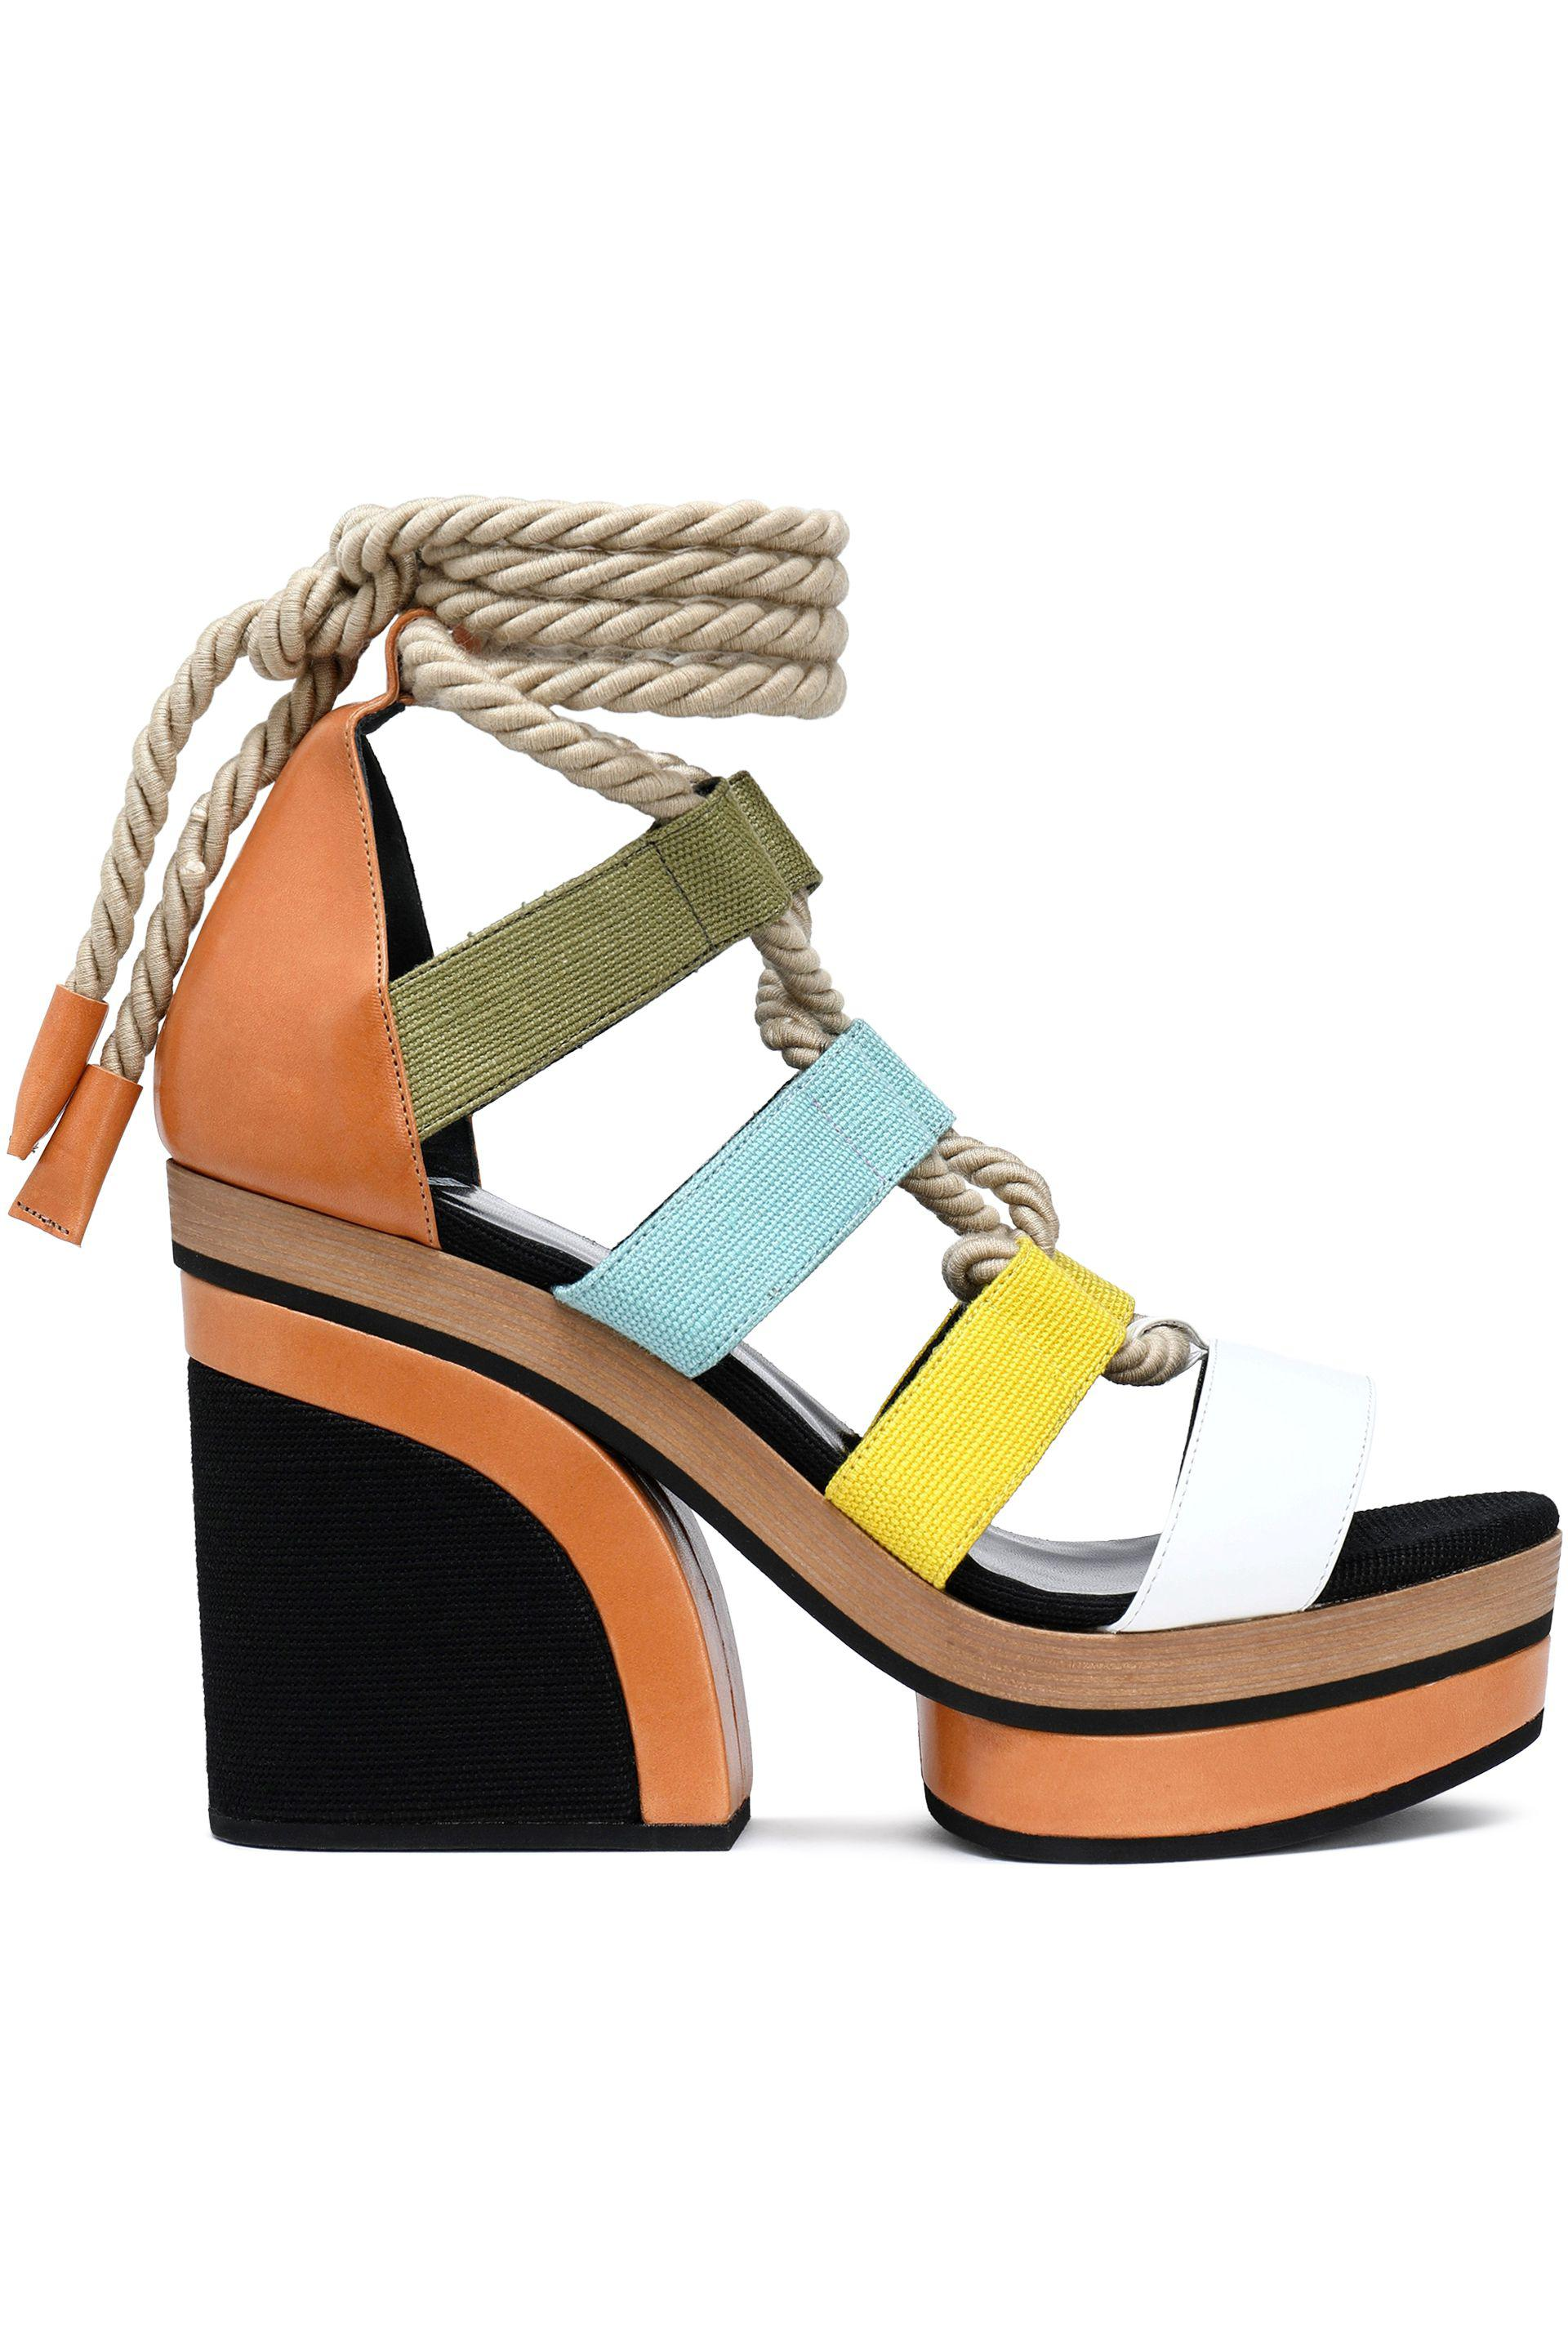 Pierre Hardy Woman Lace-up Color-block Leather And Canvas Platform Sandals Multicolor Size 40 Pierre Hardy MnNfMoa